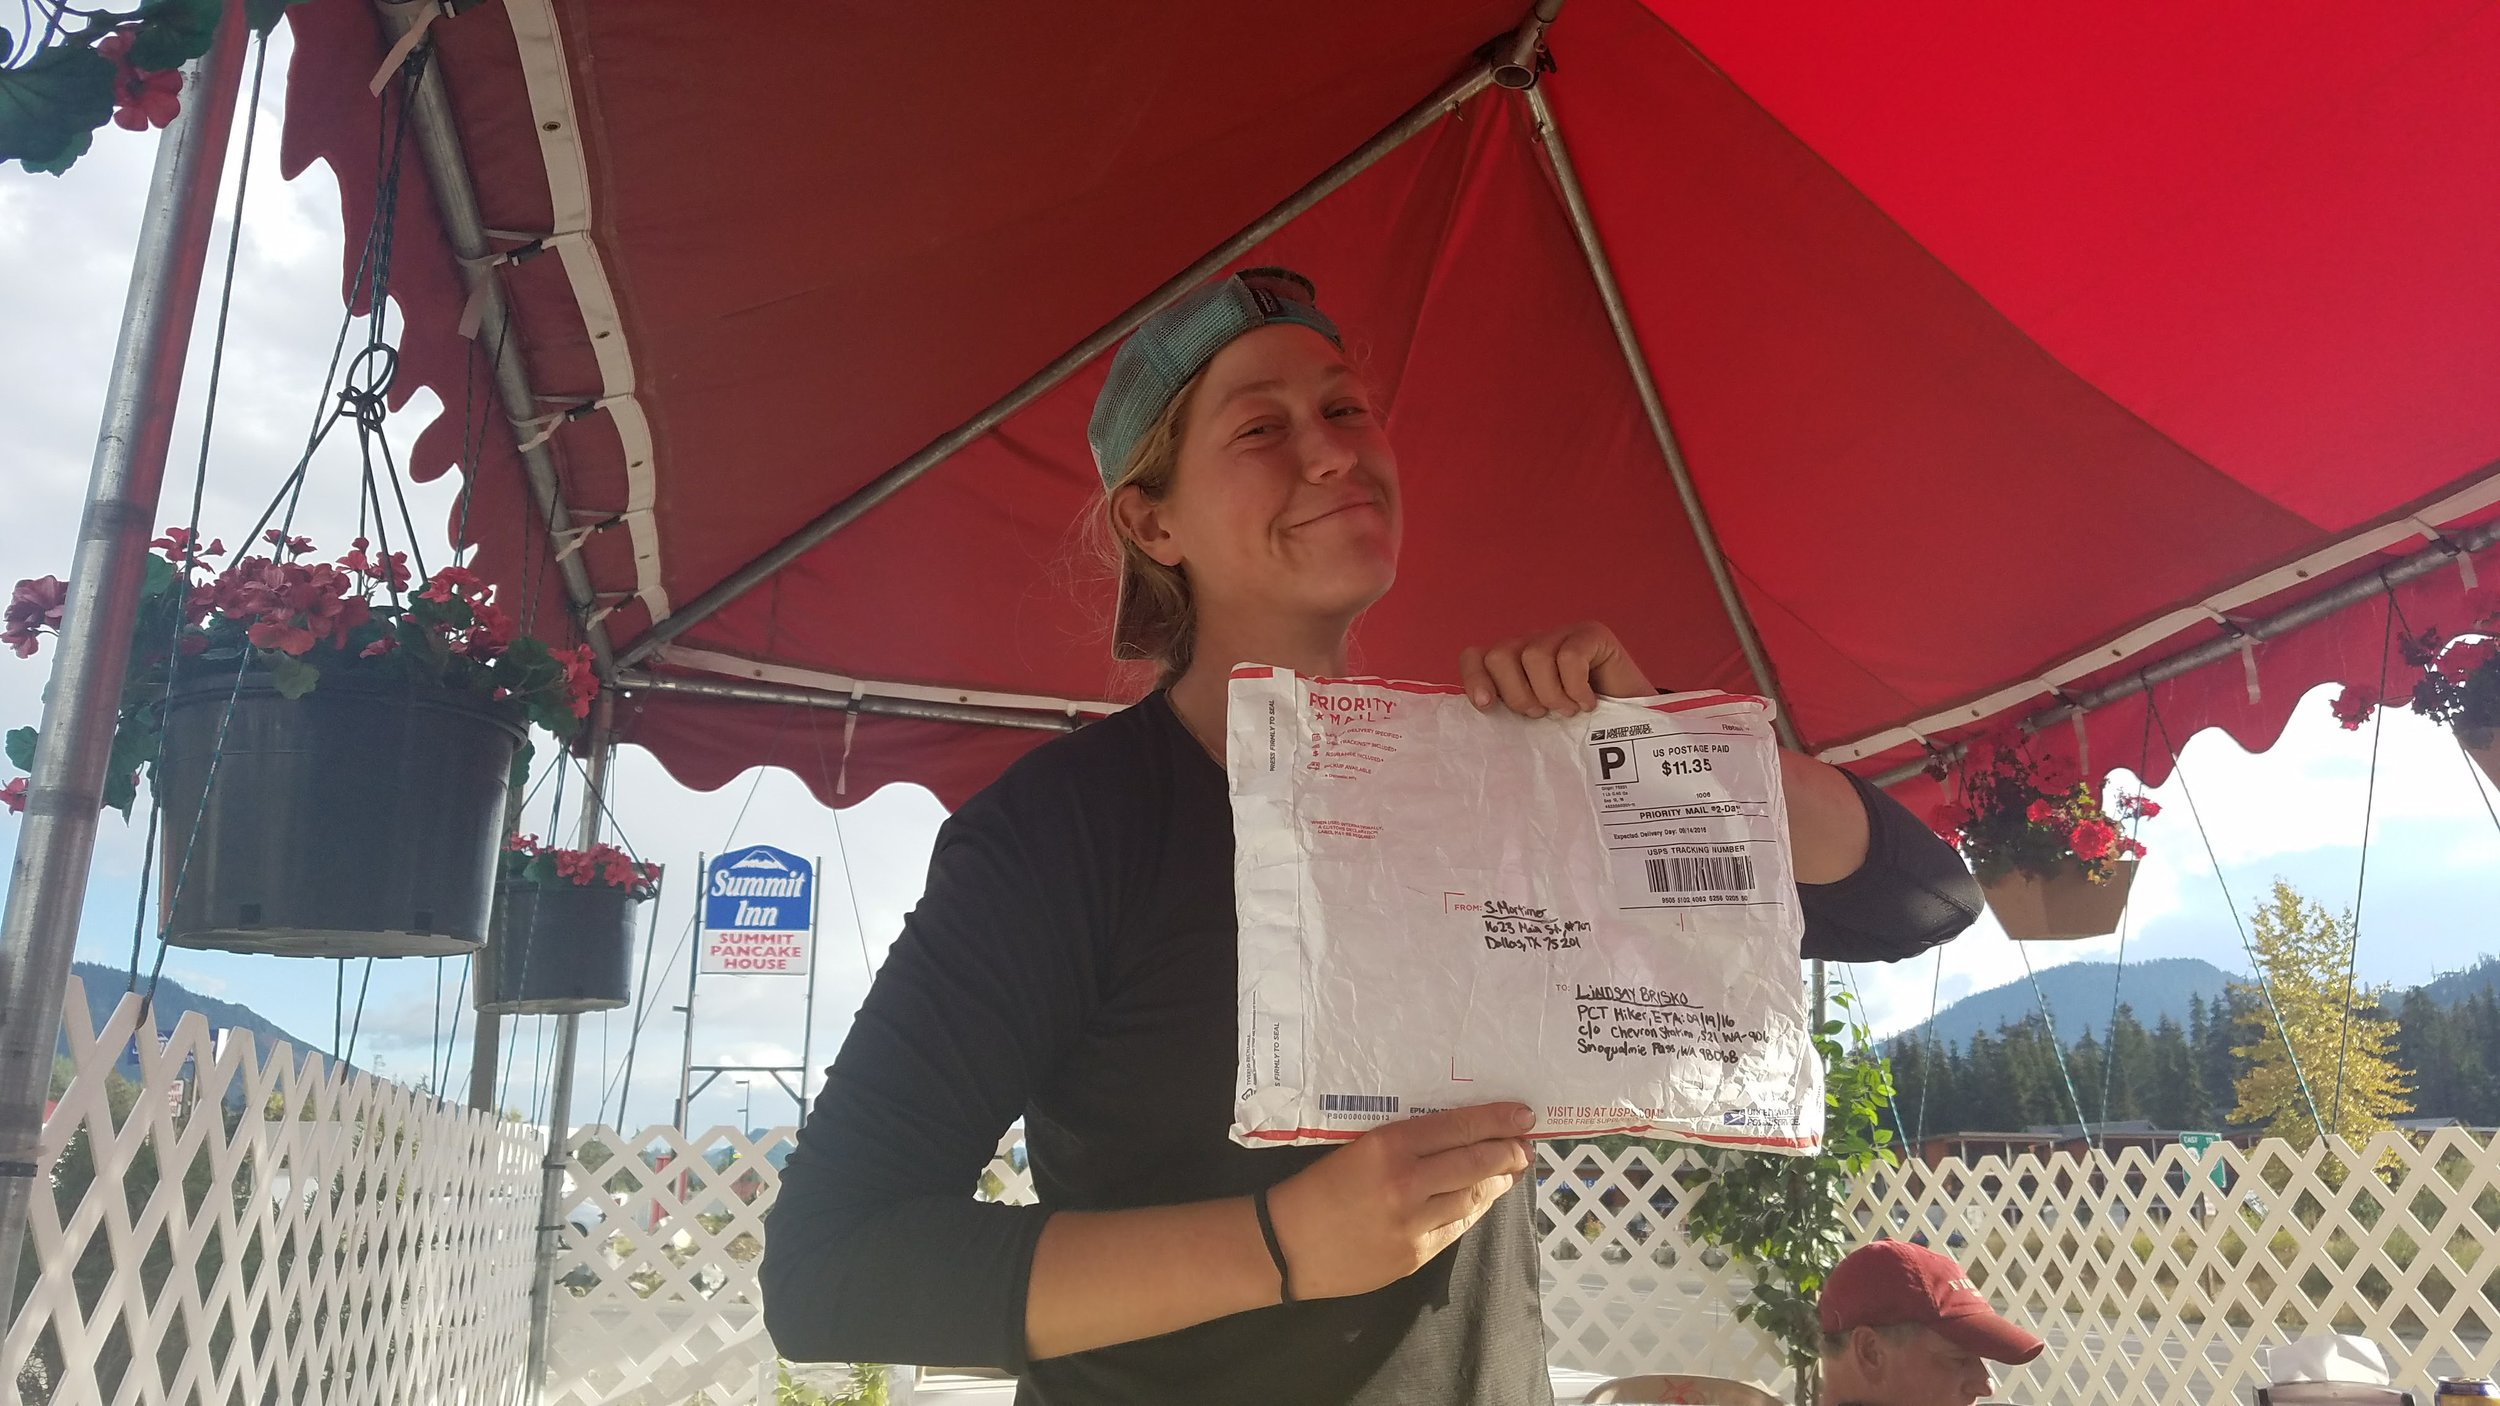 A package from Samuel! What's inside, what's inside?!?!?